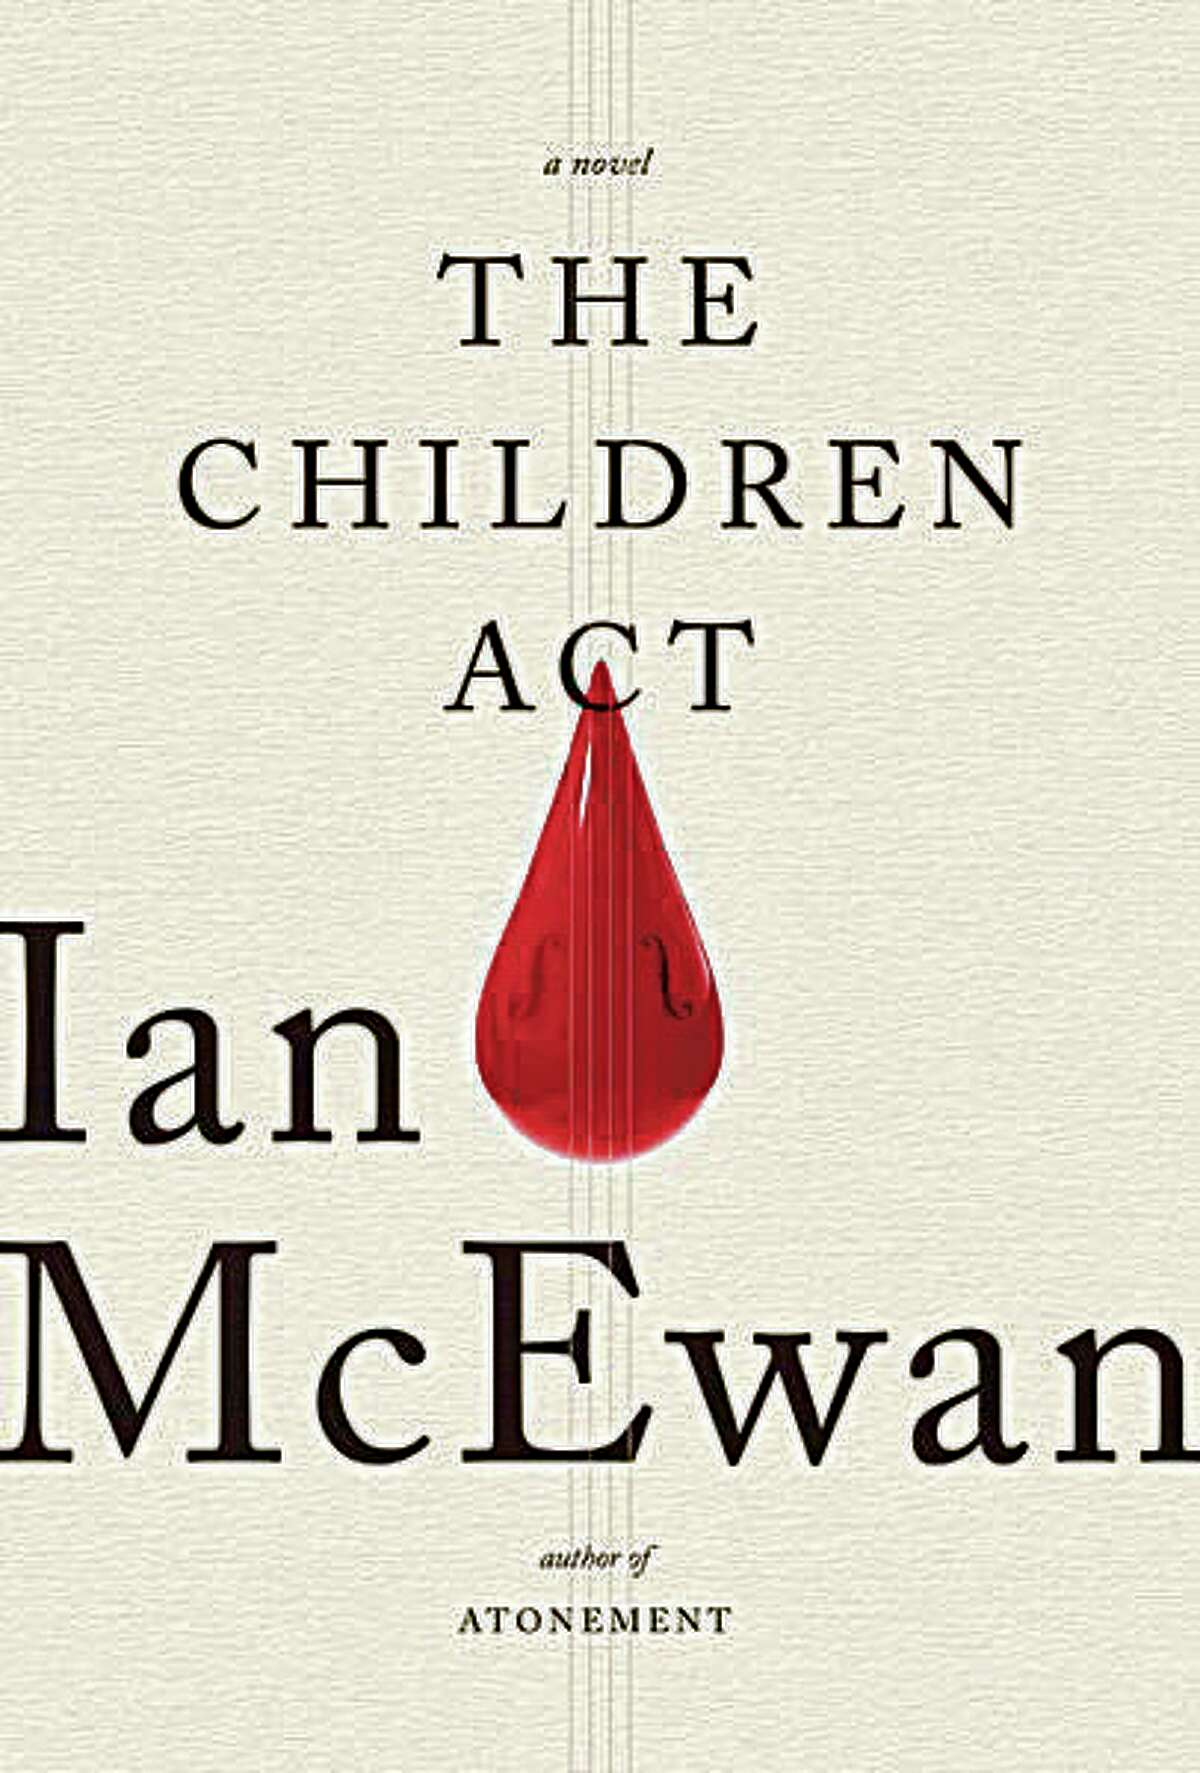 """""""The Children Act"""" by Ian McEwan.From the author of """"Atonement,"""" a slim novel about a high-court judge with marriage troubles who must determine the fate of a sensitive teenage boy. McEwan explores the limits of the law and the expansiveness of humanity, as well as the chasms between youth and age, and organized religion and free thought. (Nan A. Talese/Doubleday)"""